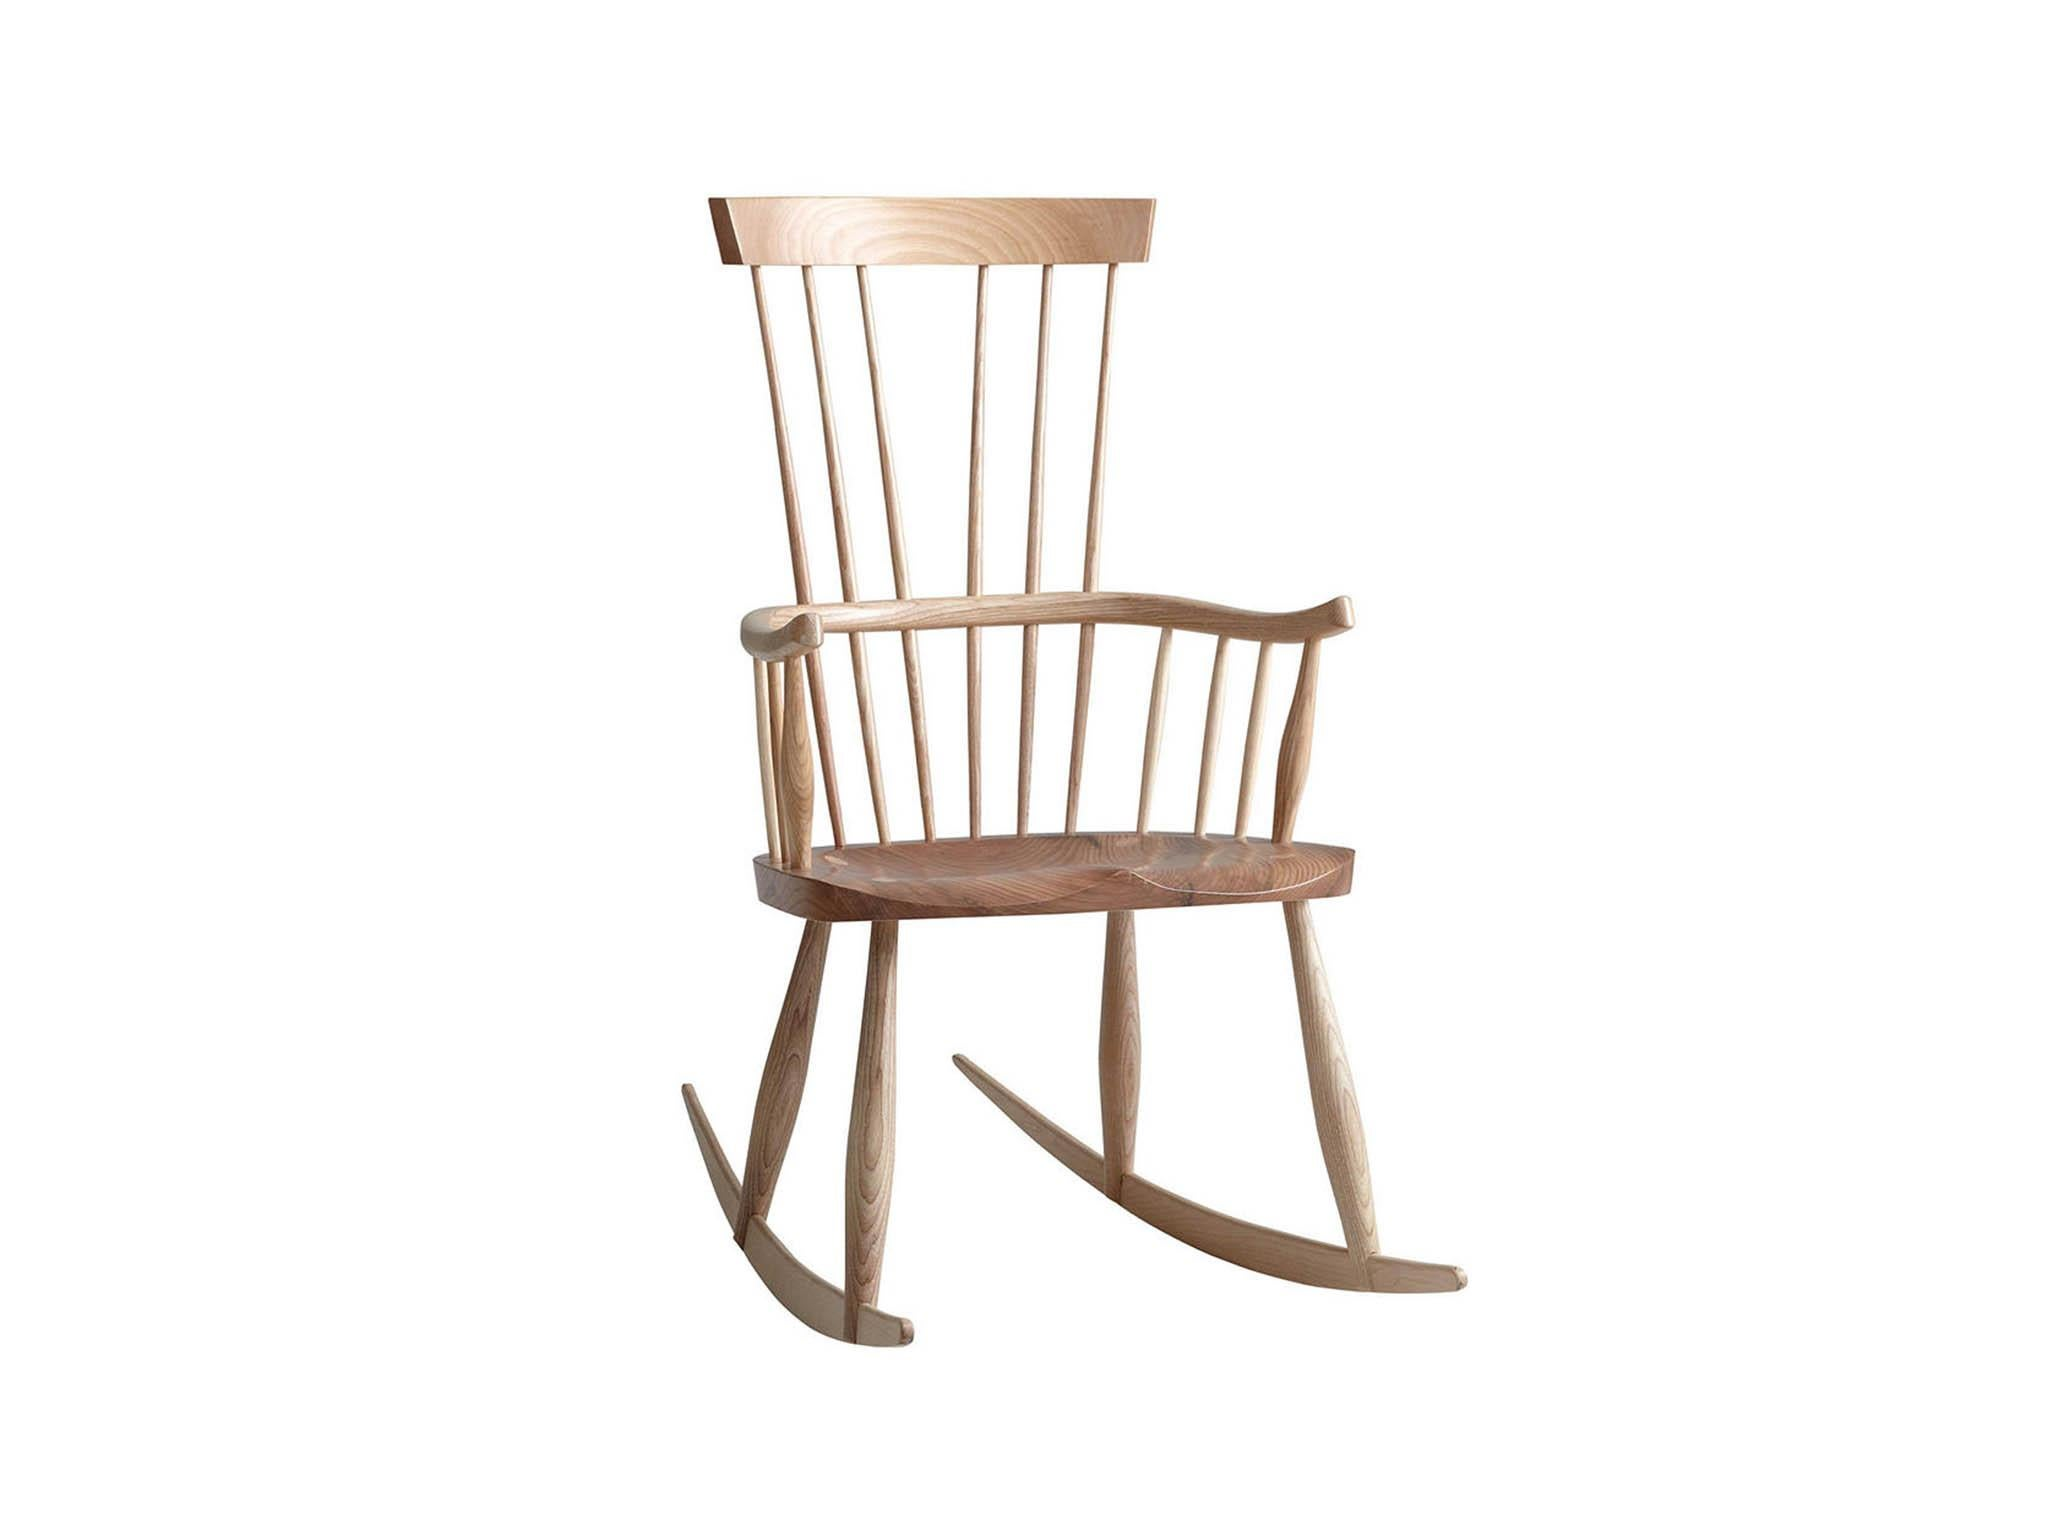 Groovy 10 Best Rocking Chairs The Independent Evergreenethics Interior Chair Design Evergreenethicsorg